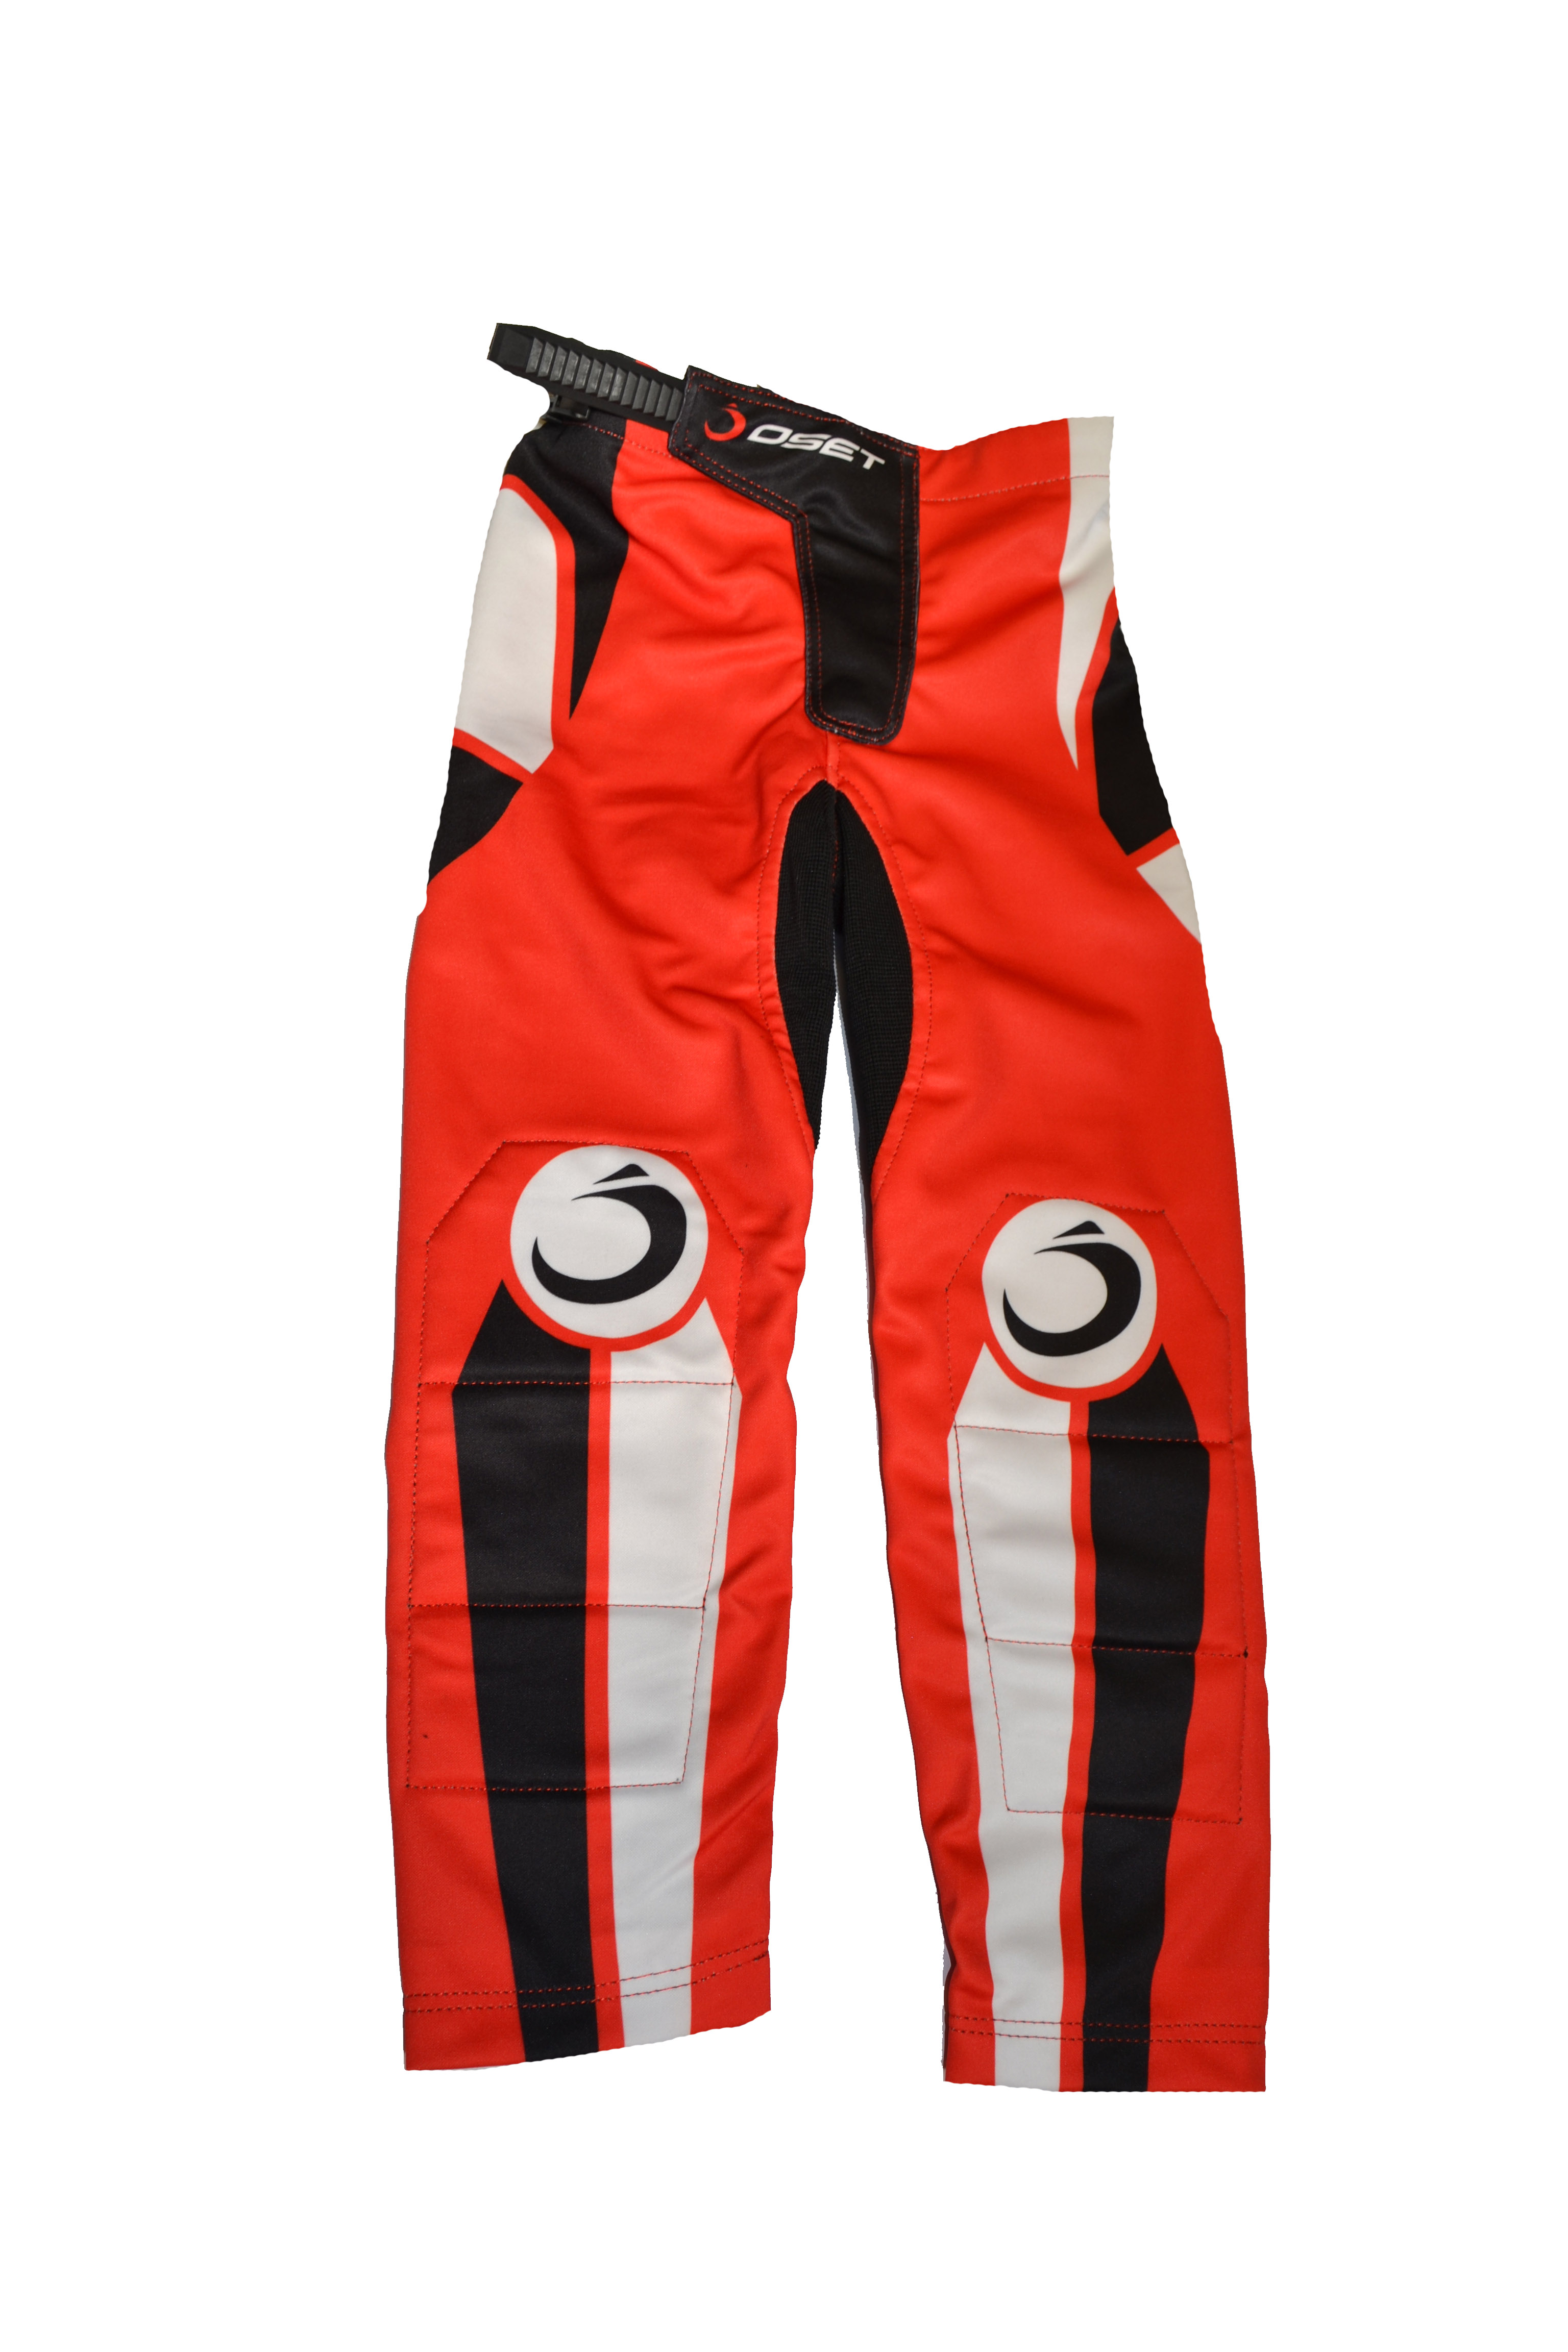 Oset Pro Range Kids Trials Pants/Jersey White/Red LAST OF LINE